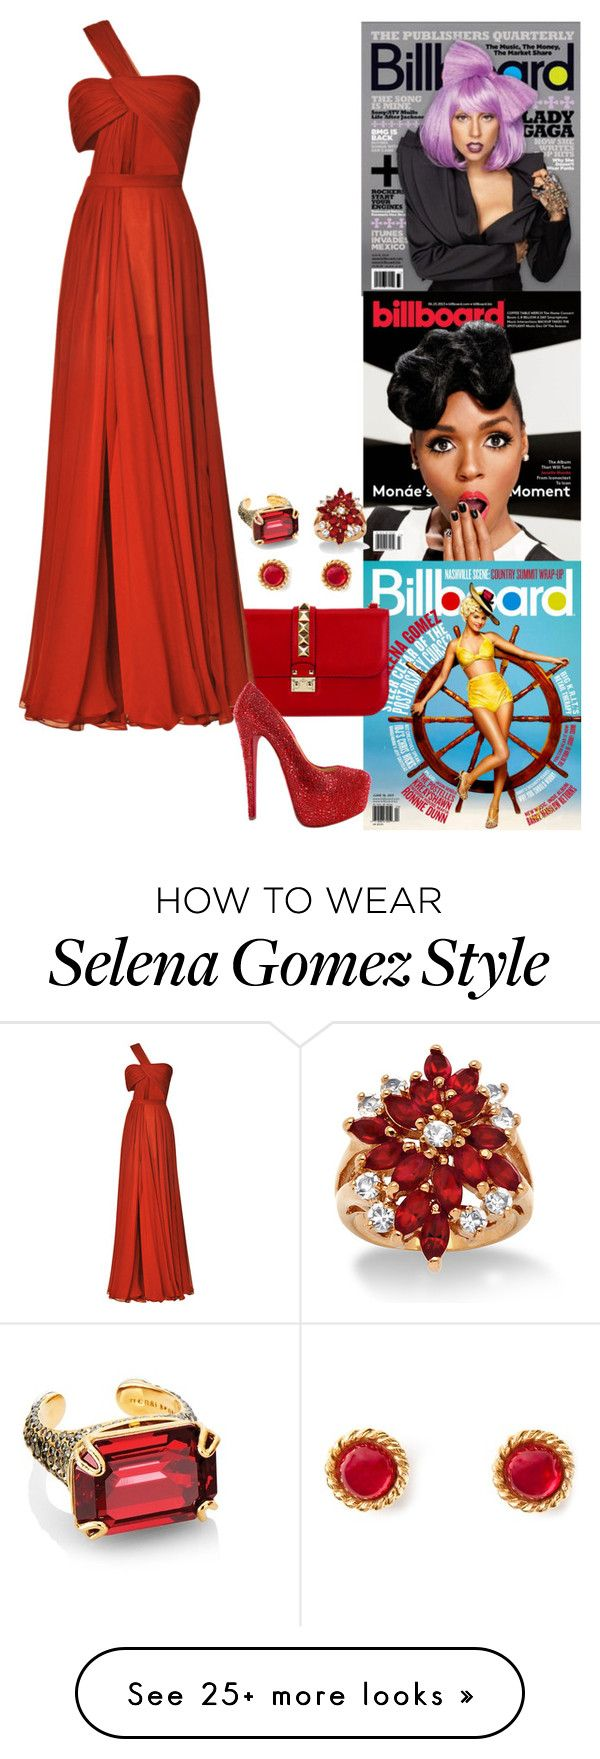 """'Billboard' US Magazine - June 2014: Front Cover."" by foreverforbiddenromancefashion on Polyvore featuring Prabal Gurung, Christian Louboutin, Henri Bendel, Palm Beach Jewelry, Chanel, women's clothing, women, female, woman and misses"